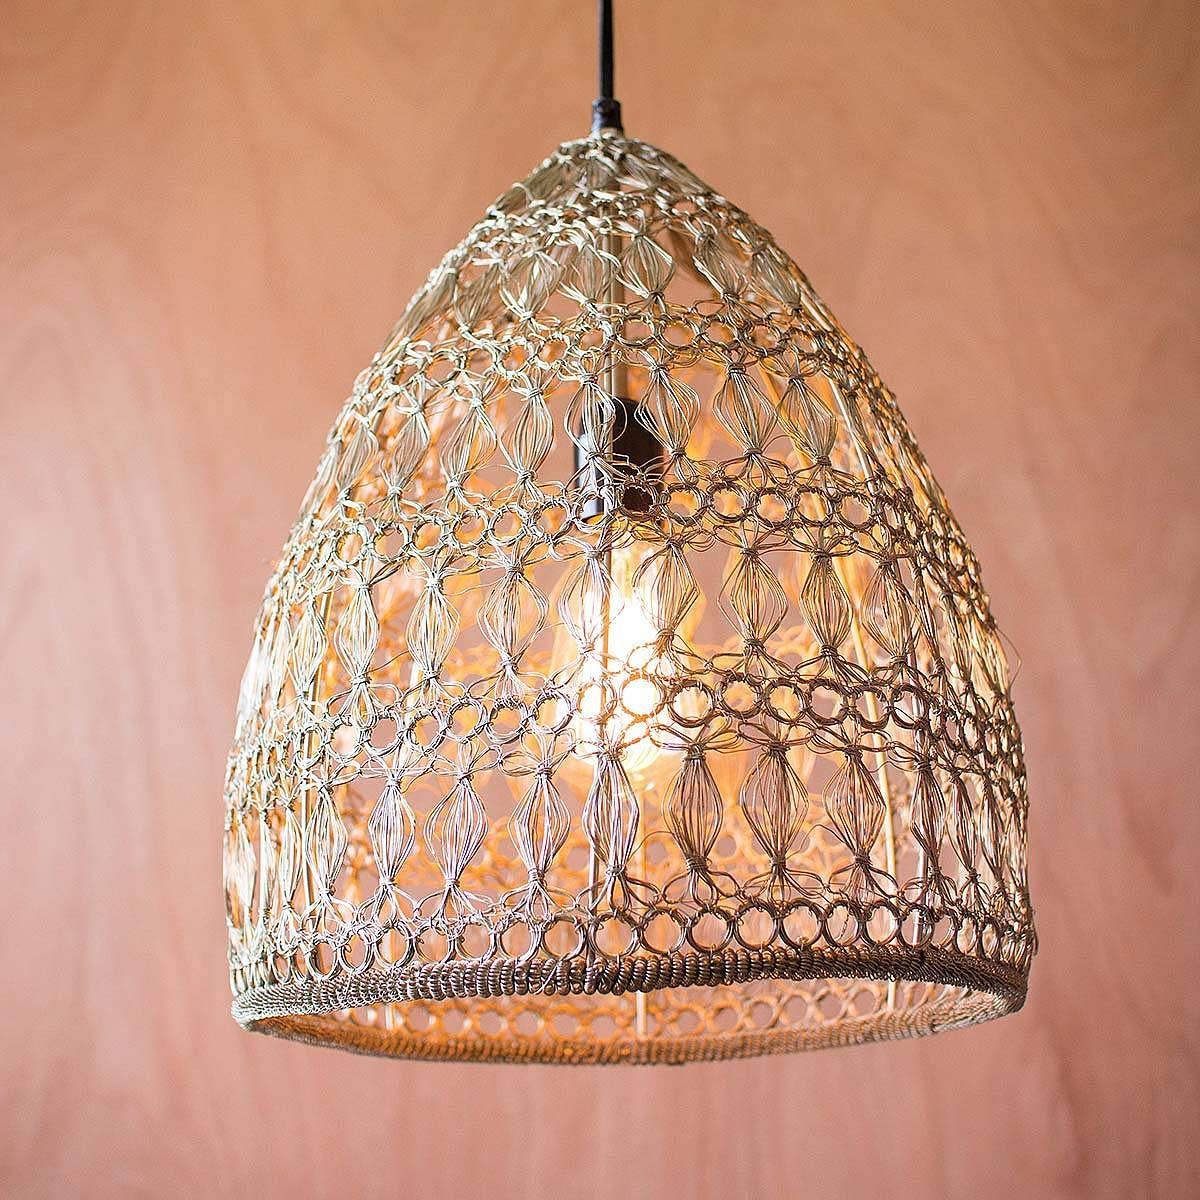 Crochet Wire Pendant Lamp | Pendant Lamp, Handmade, Metal Wire pertaining to Corded Pendant Lights (Image 1 of 15)